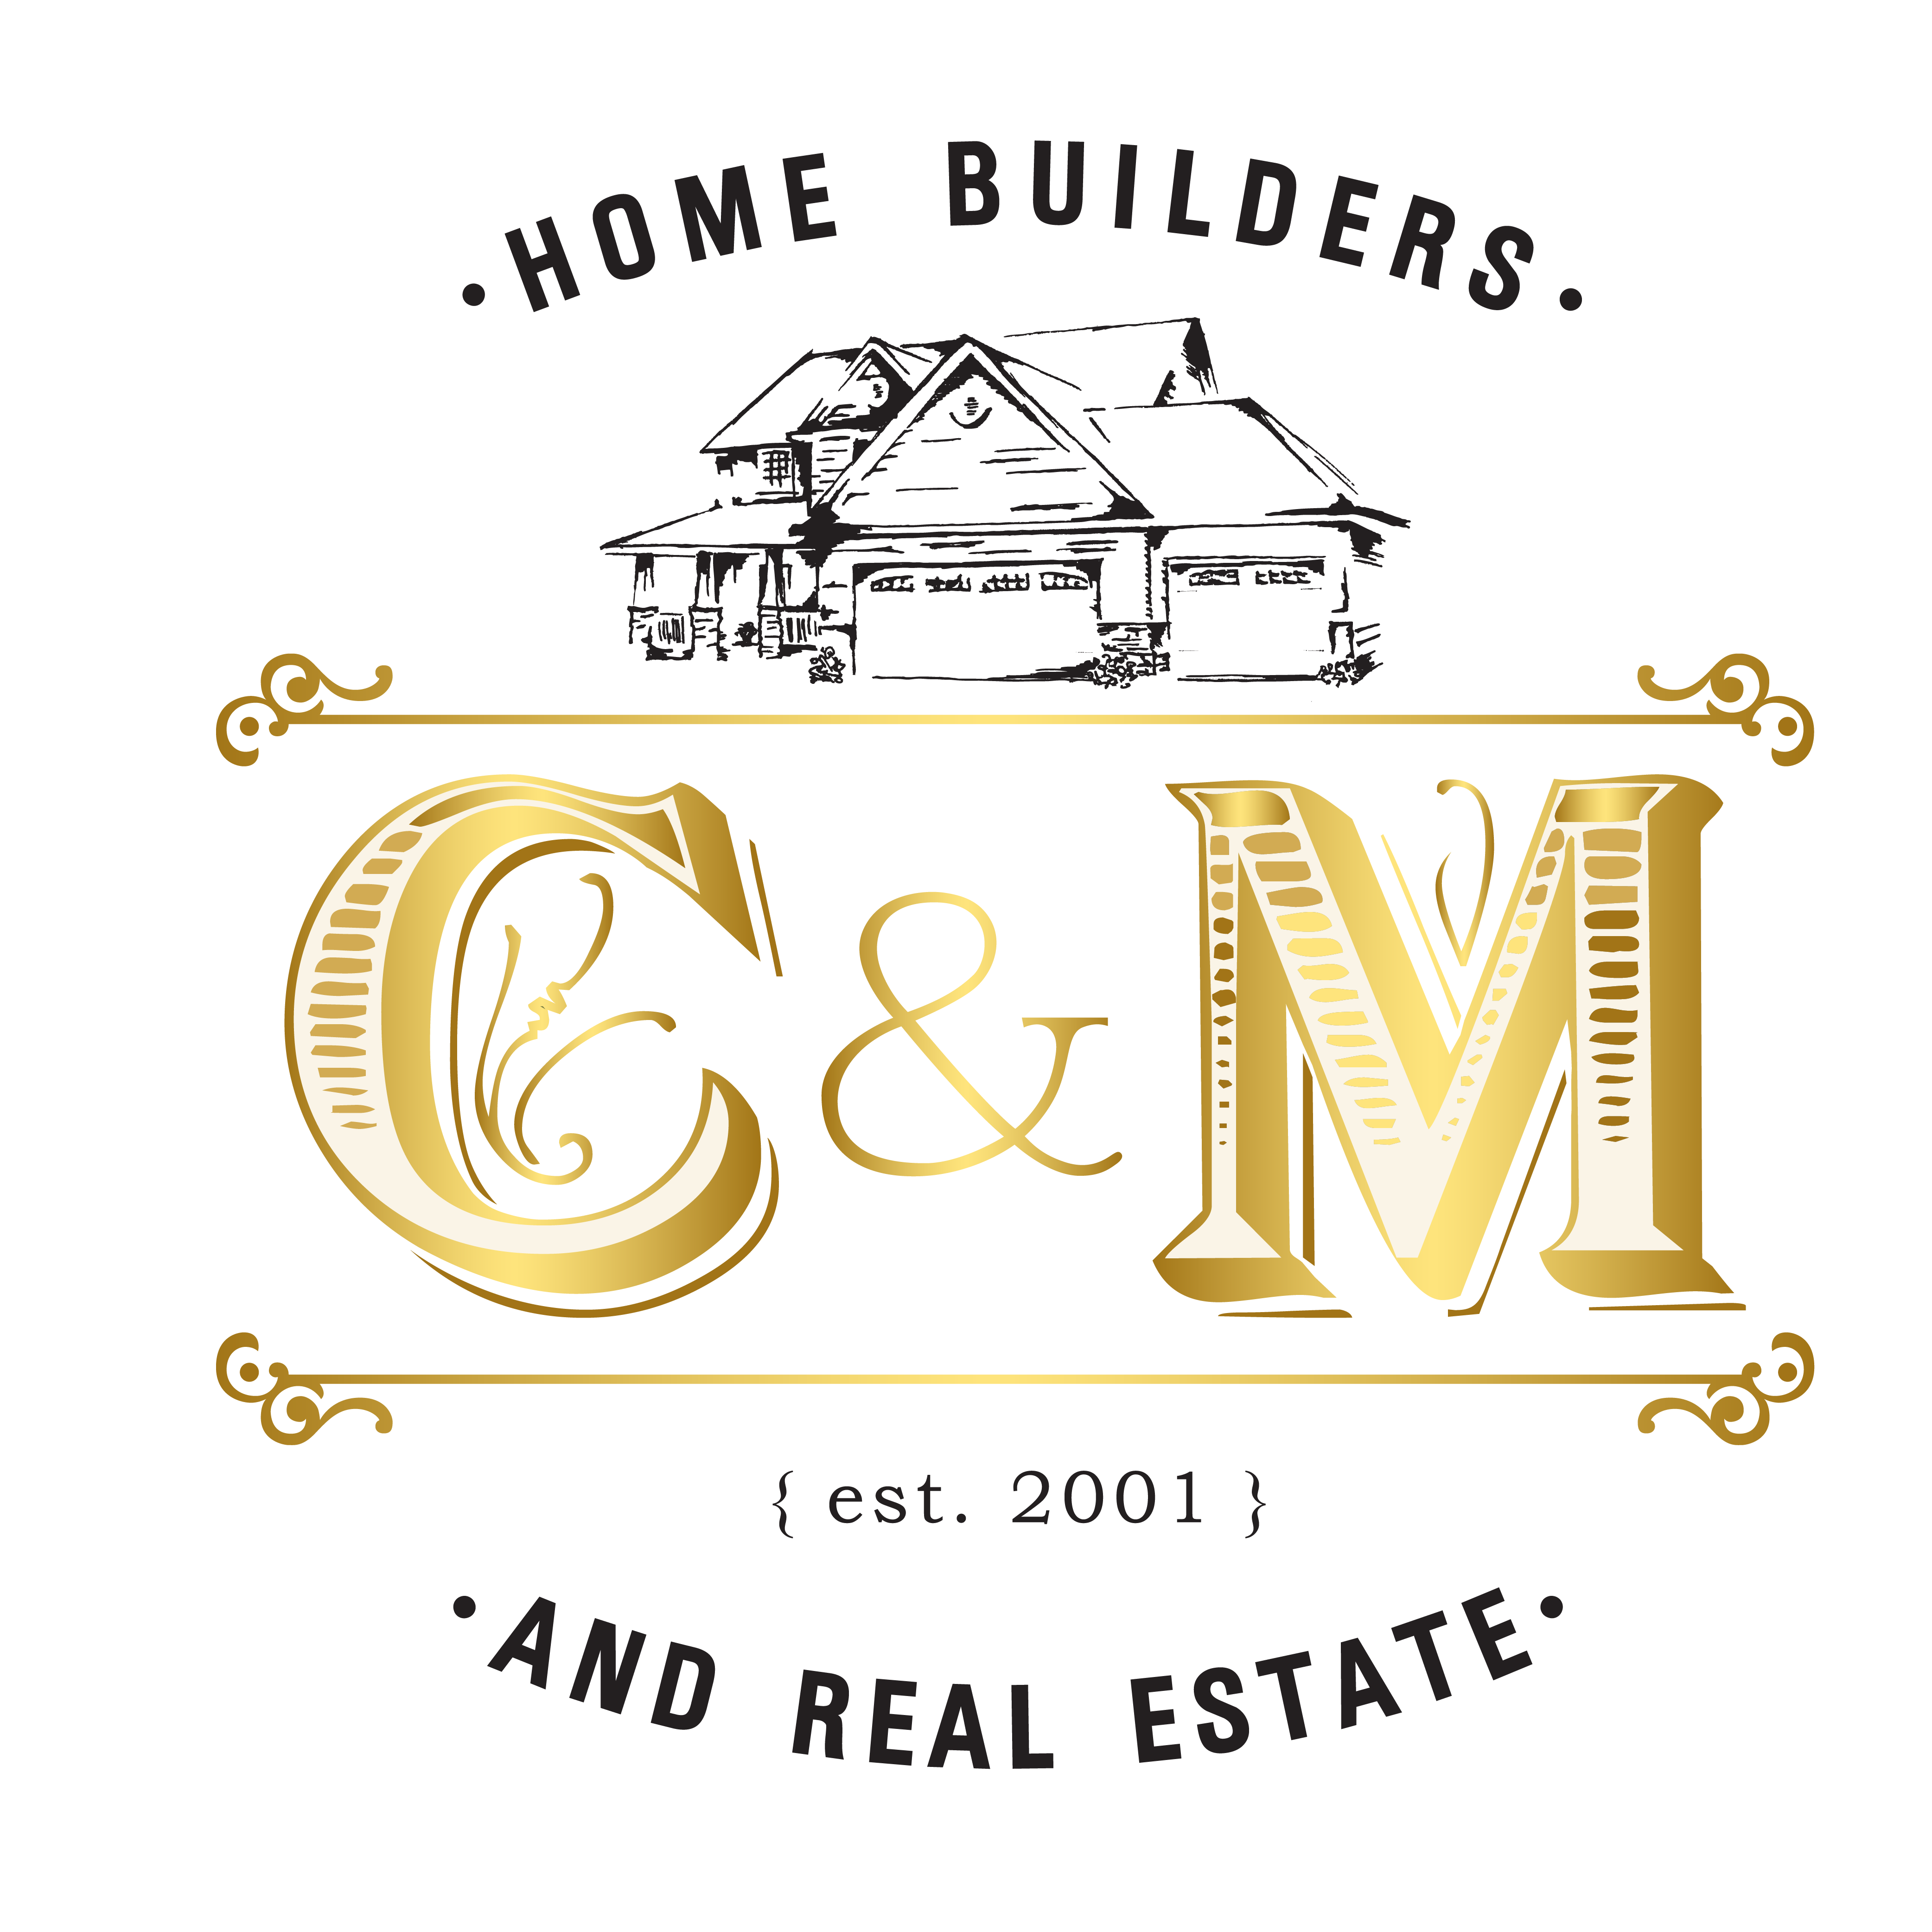 C&M Home Builders & Real Estate